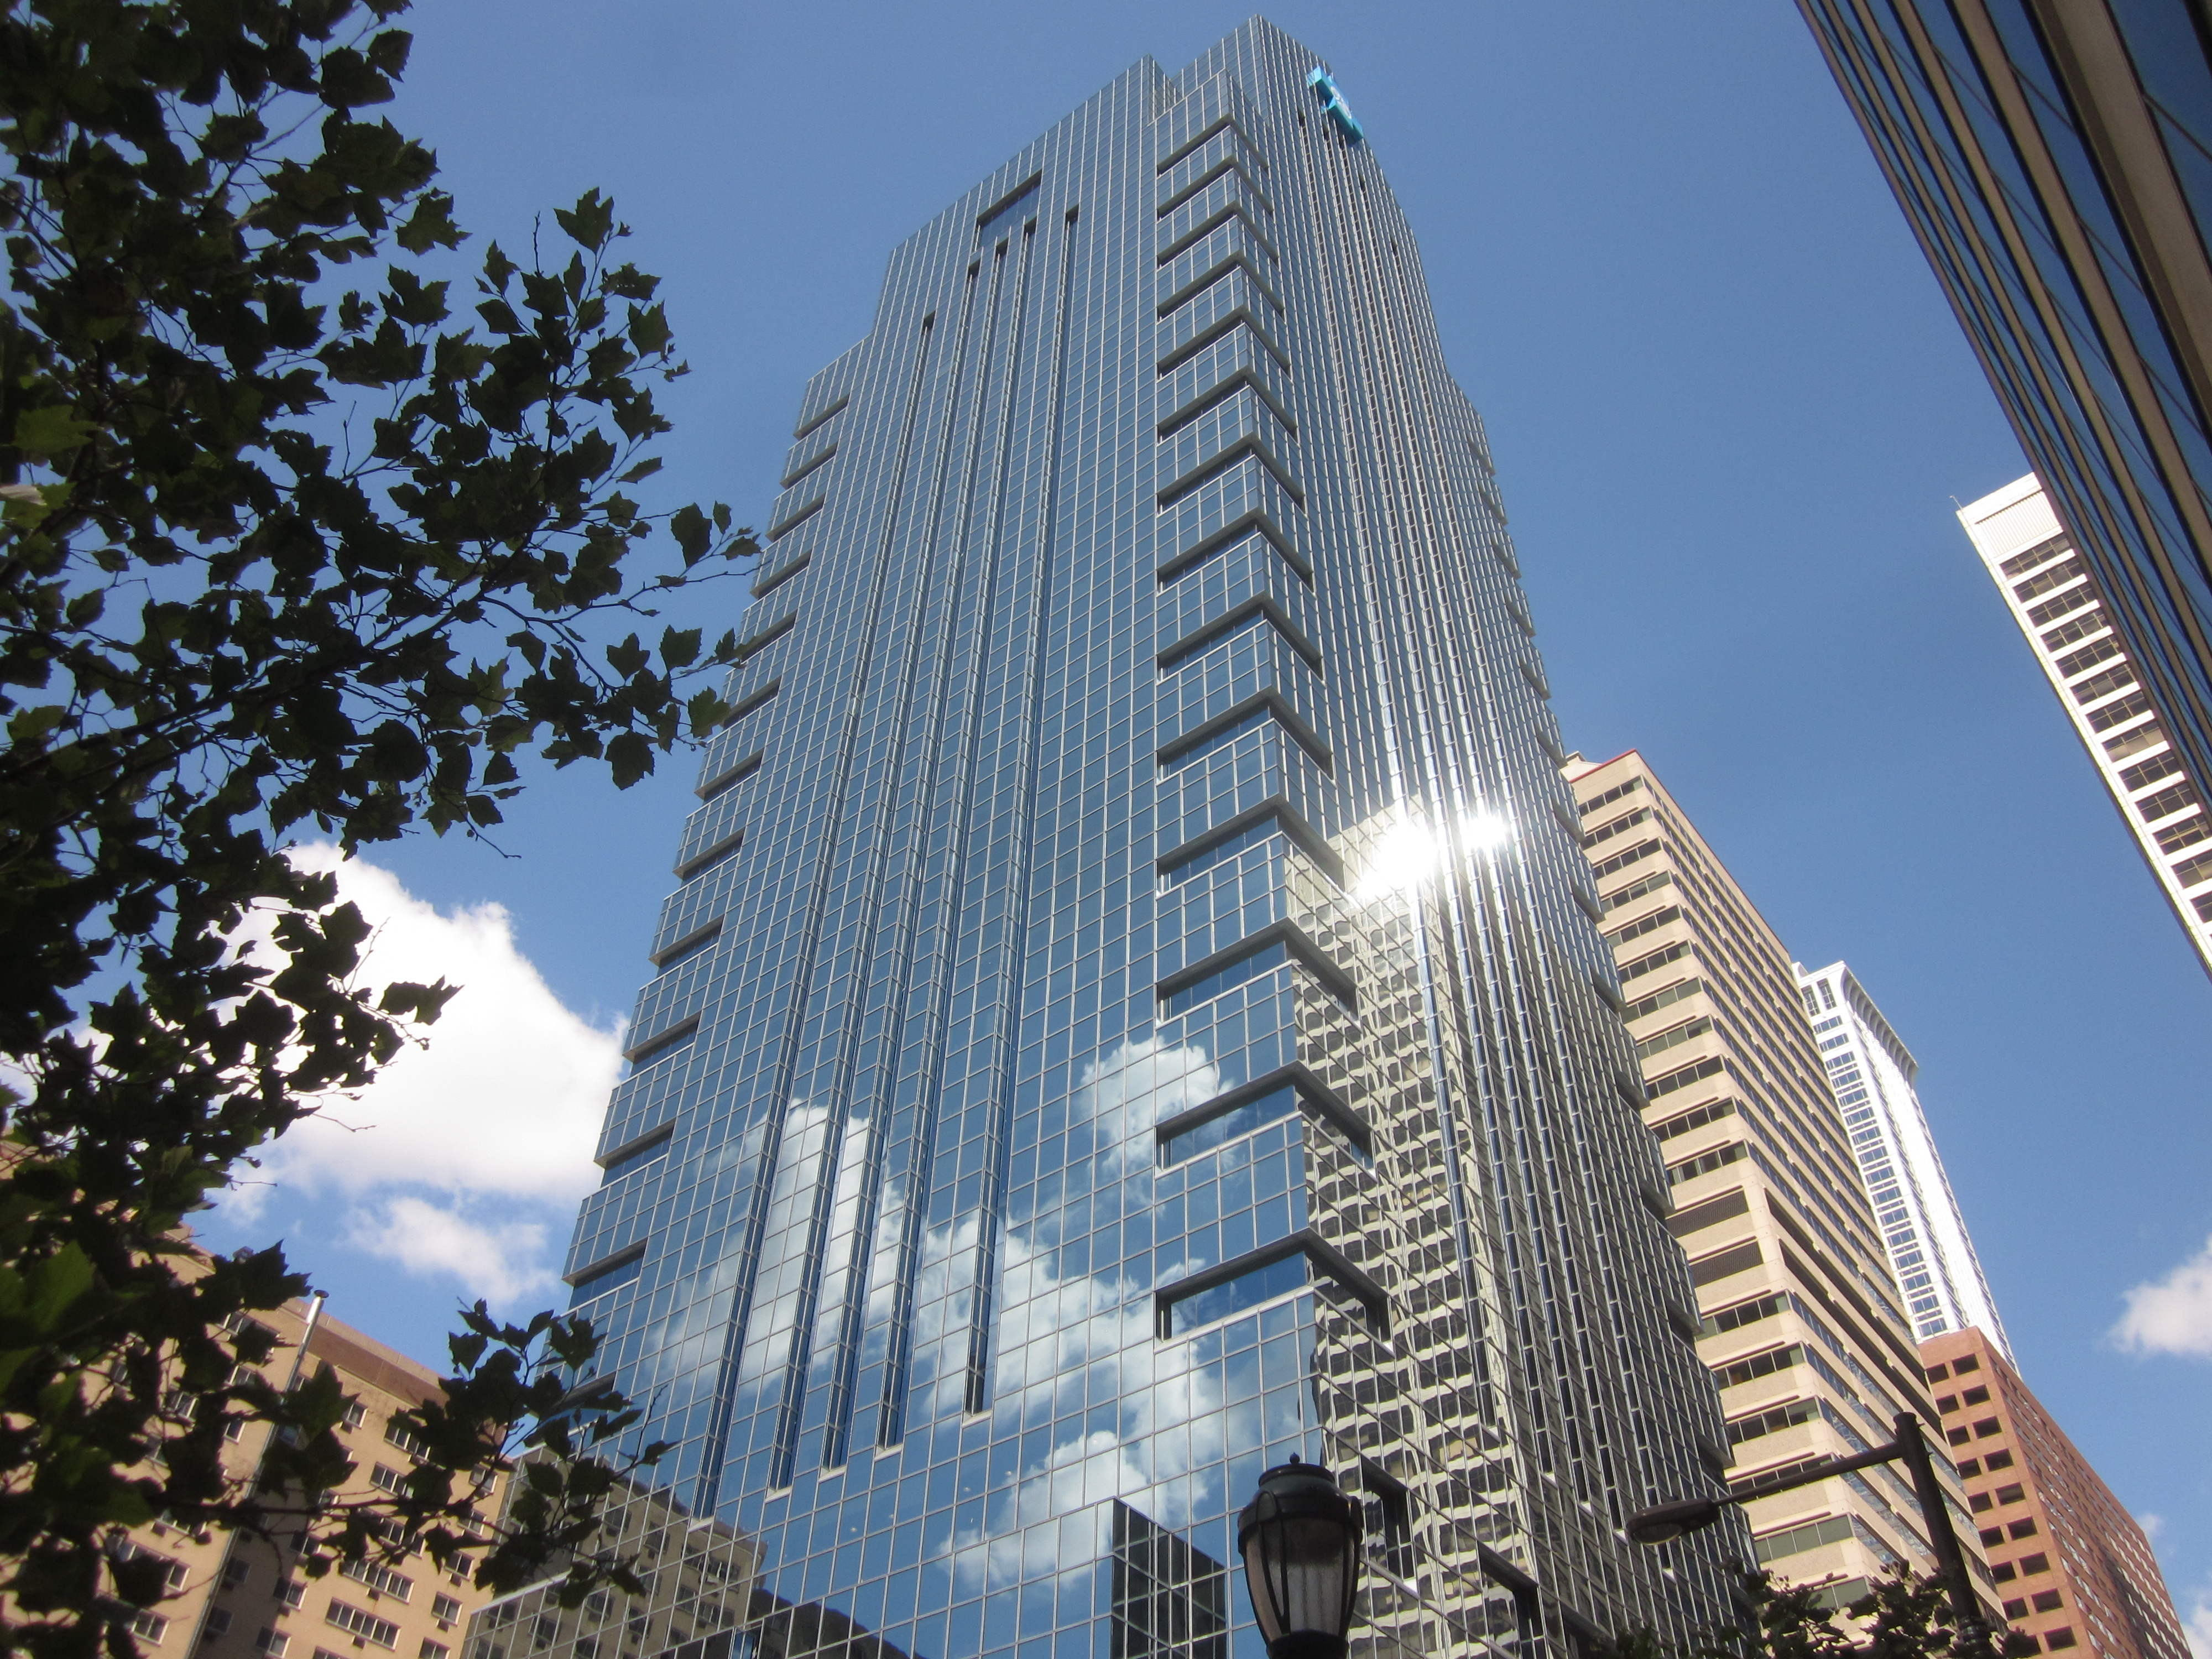 New luxury apartment tower at 1919 Market Street, in Center